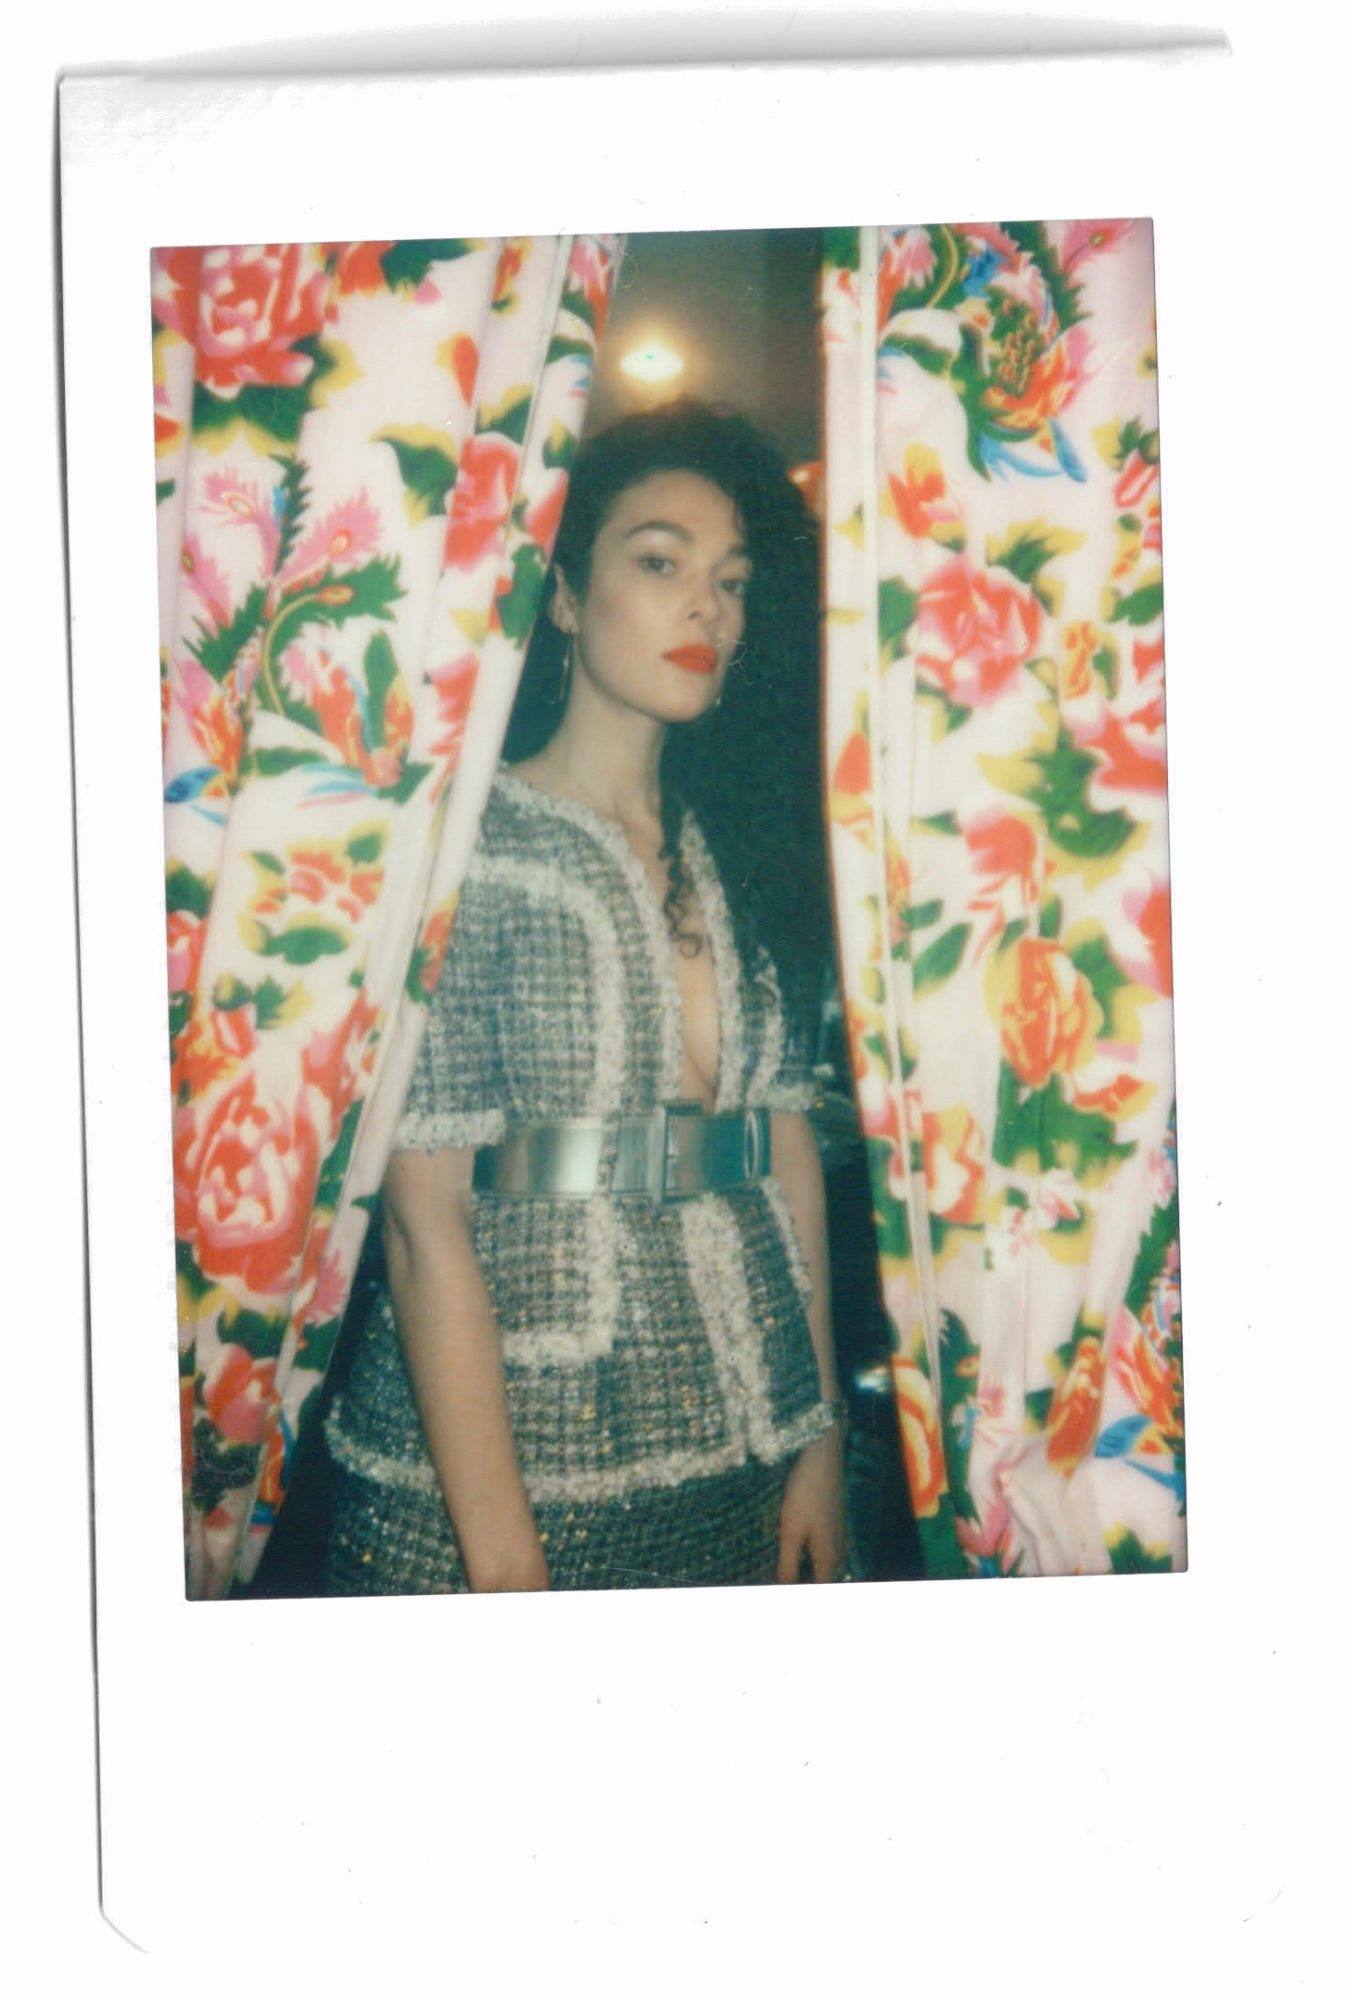 Margaret-Zhang-Chanel-Couture-Film-Shine-By-Three-Yasmin-Daguilh-polaroid